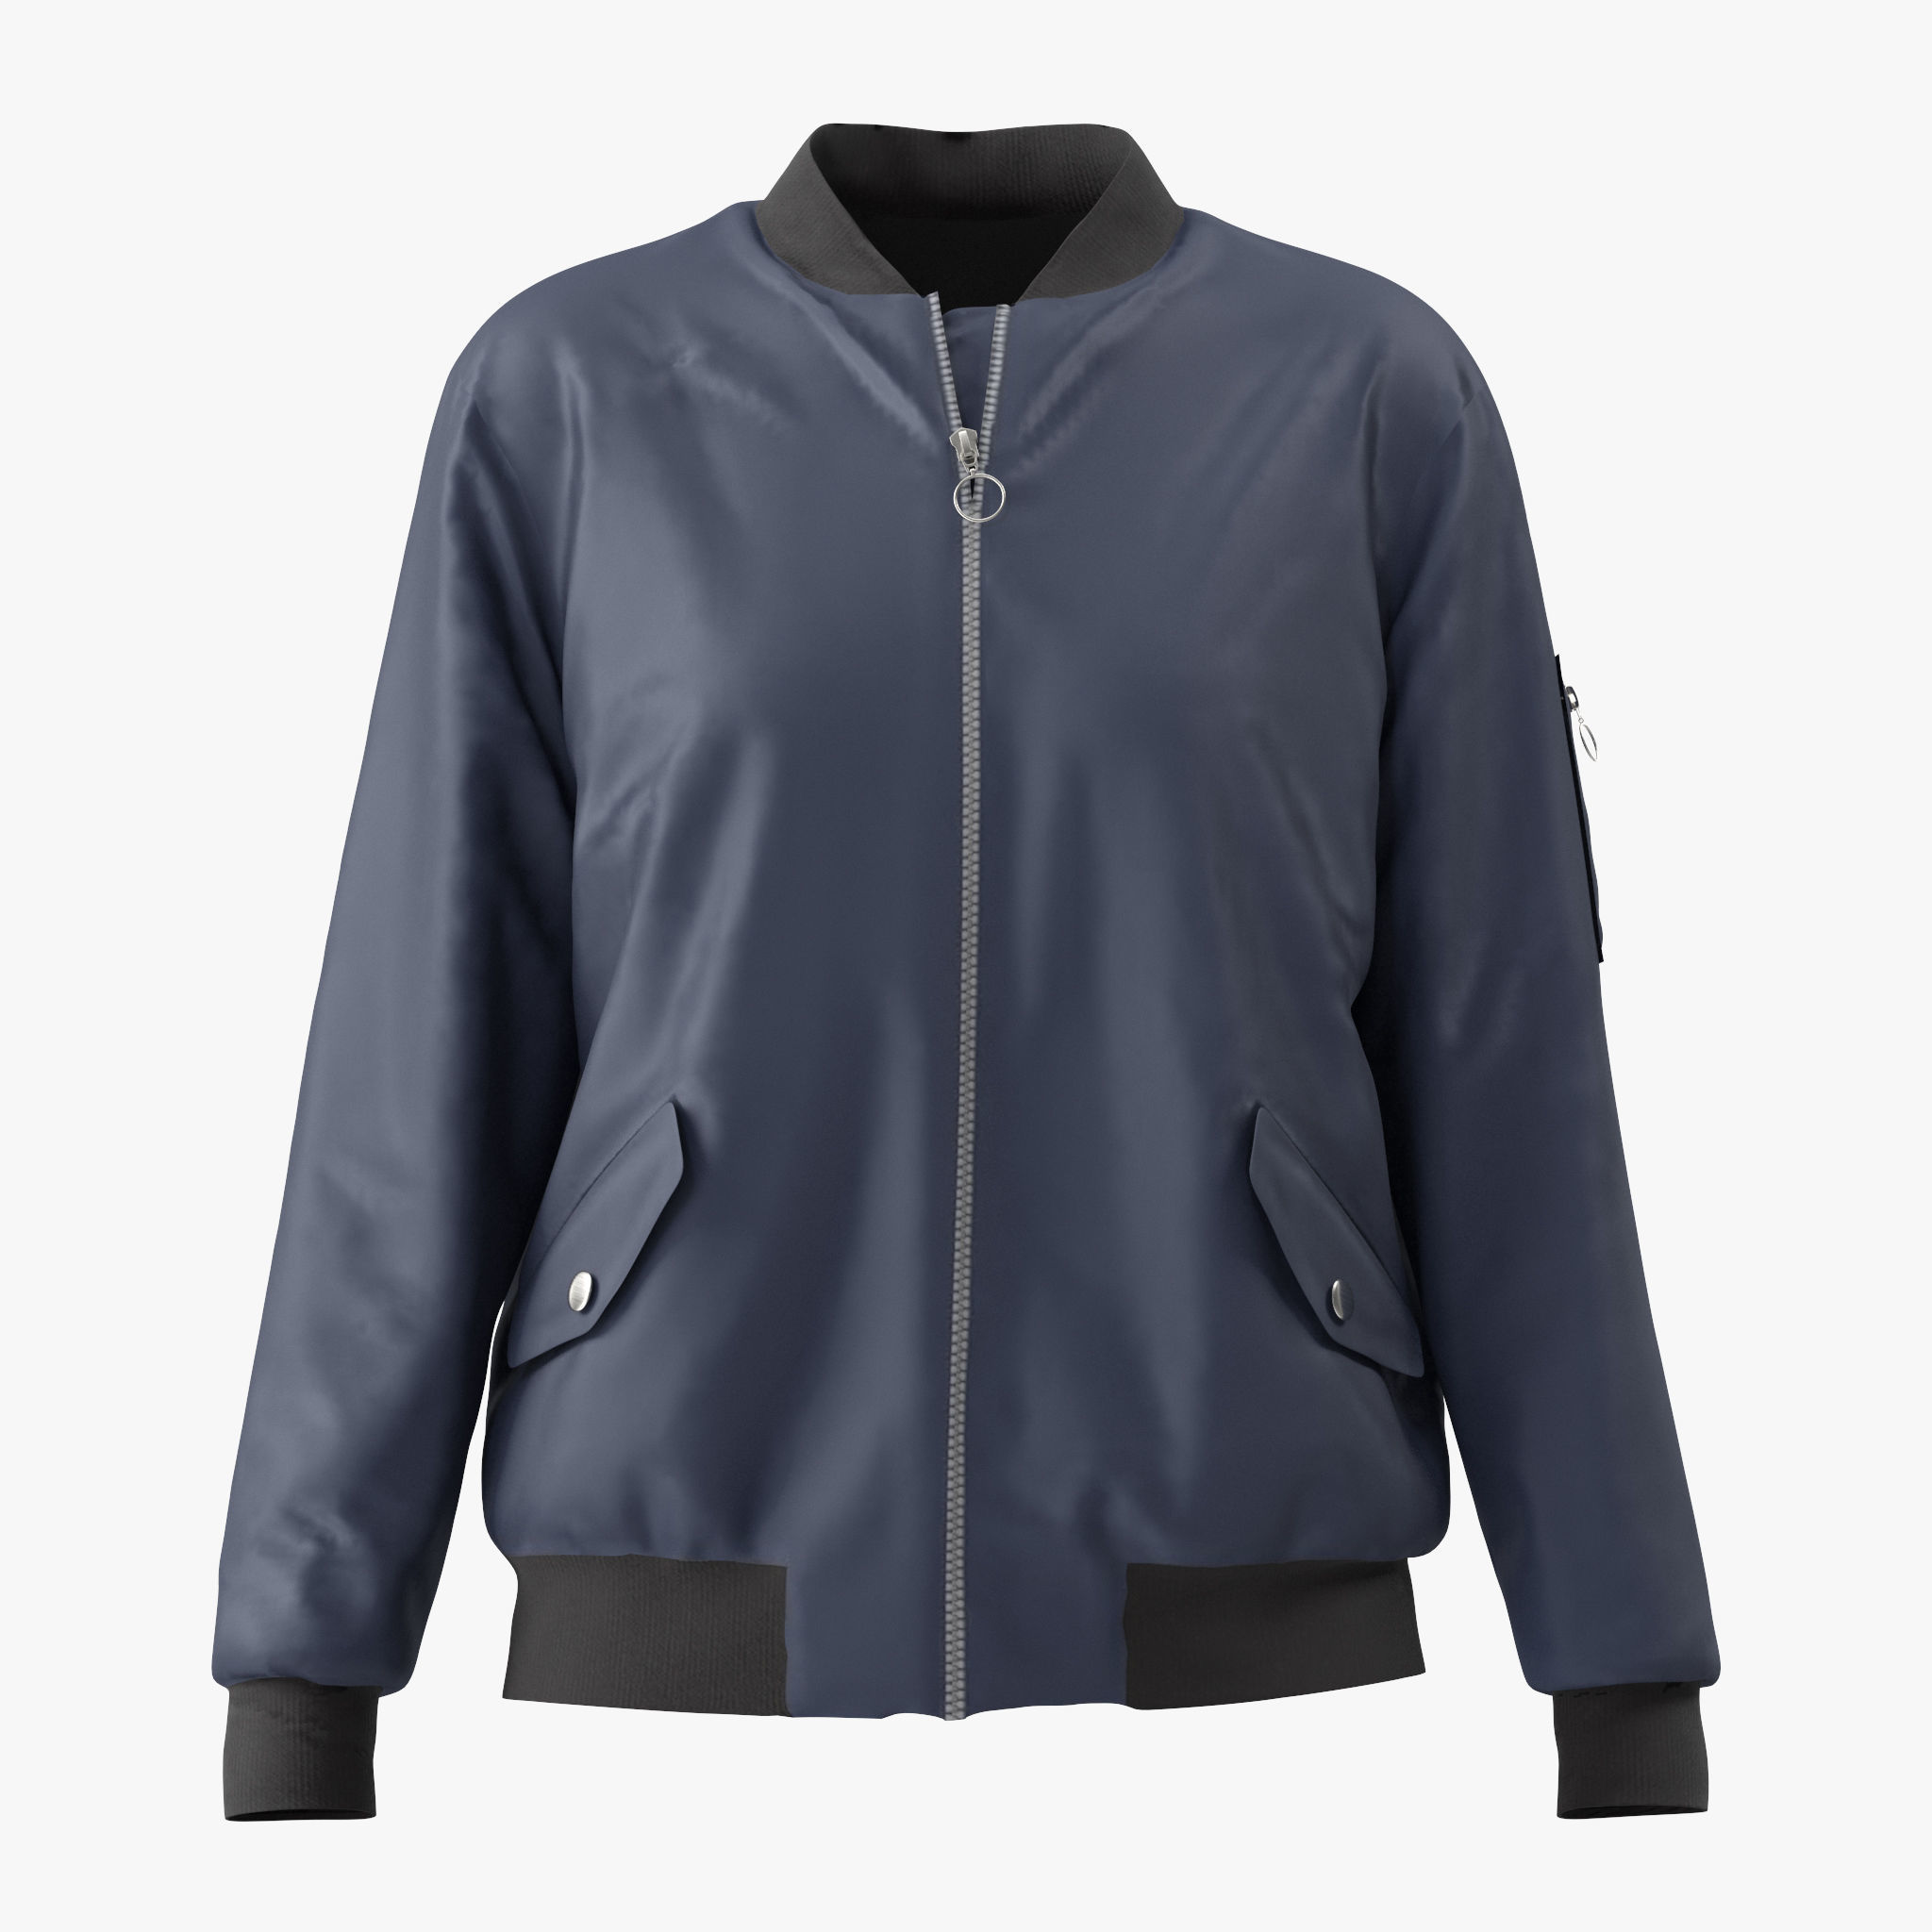 Hix Mountain Bomber Jacket